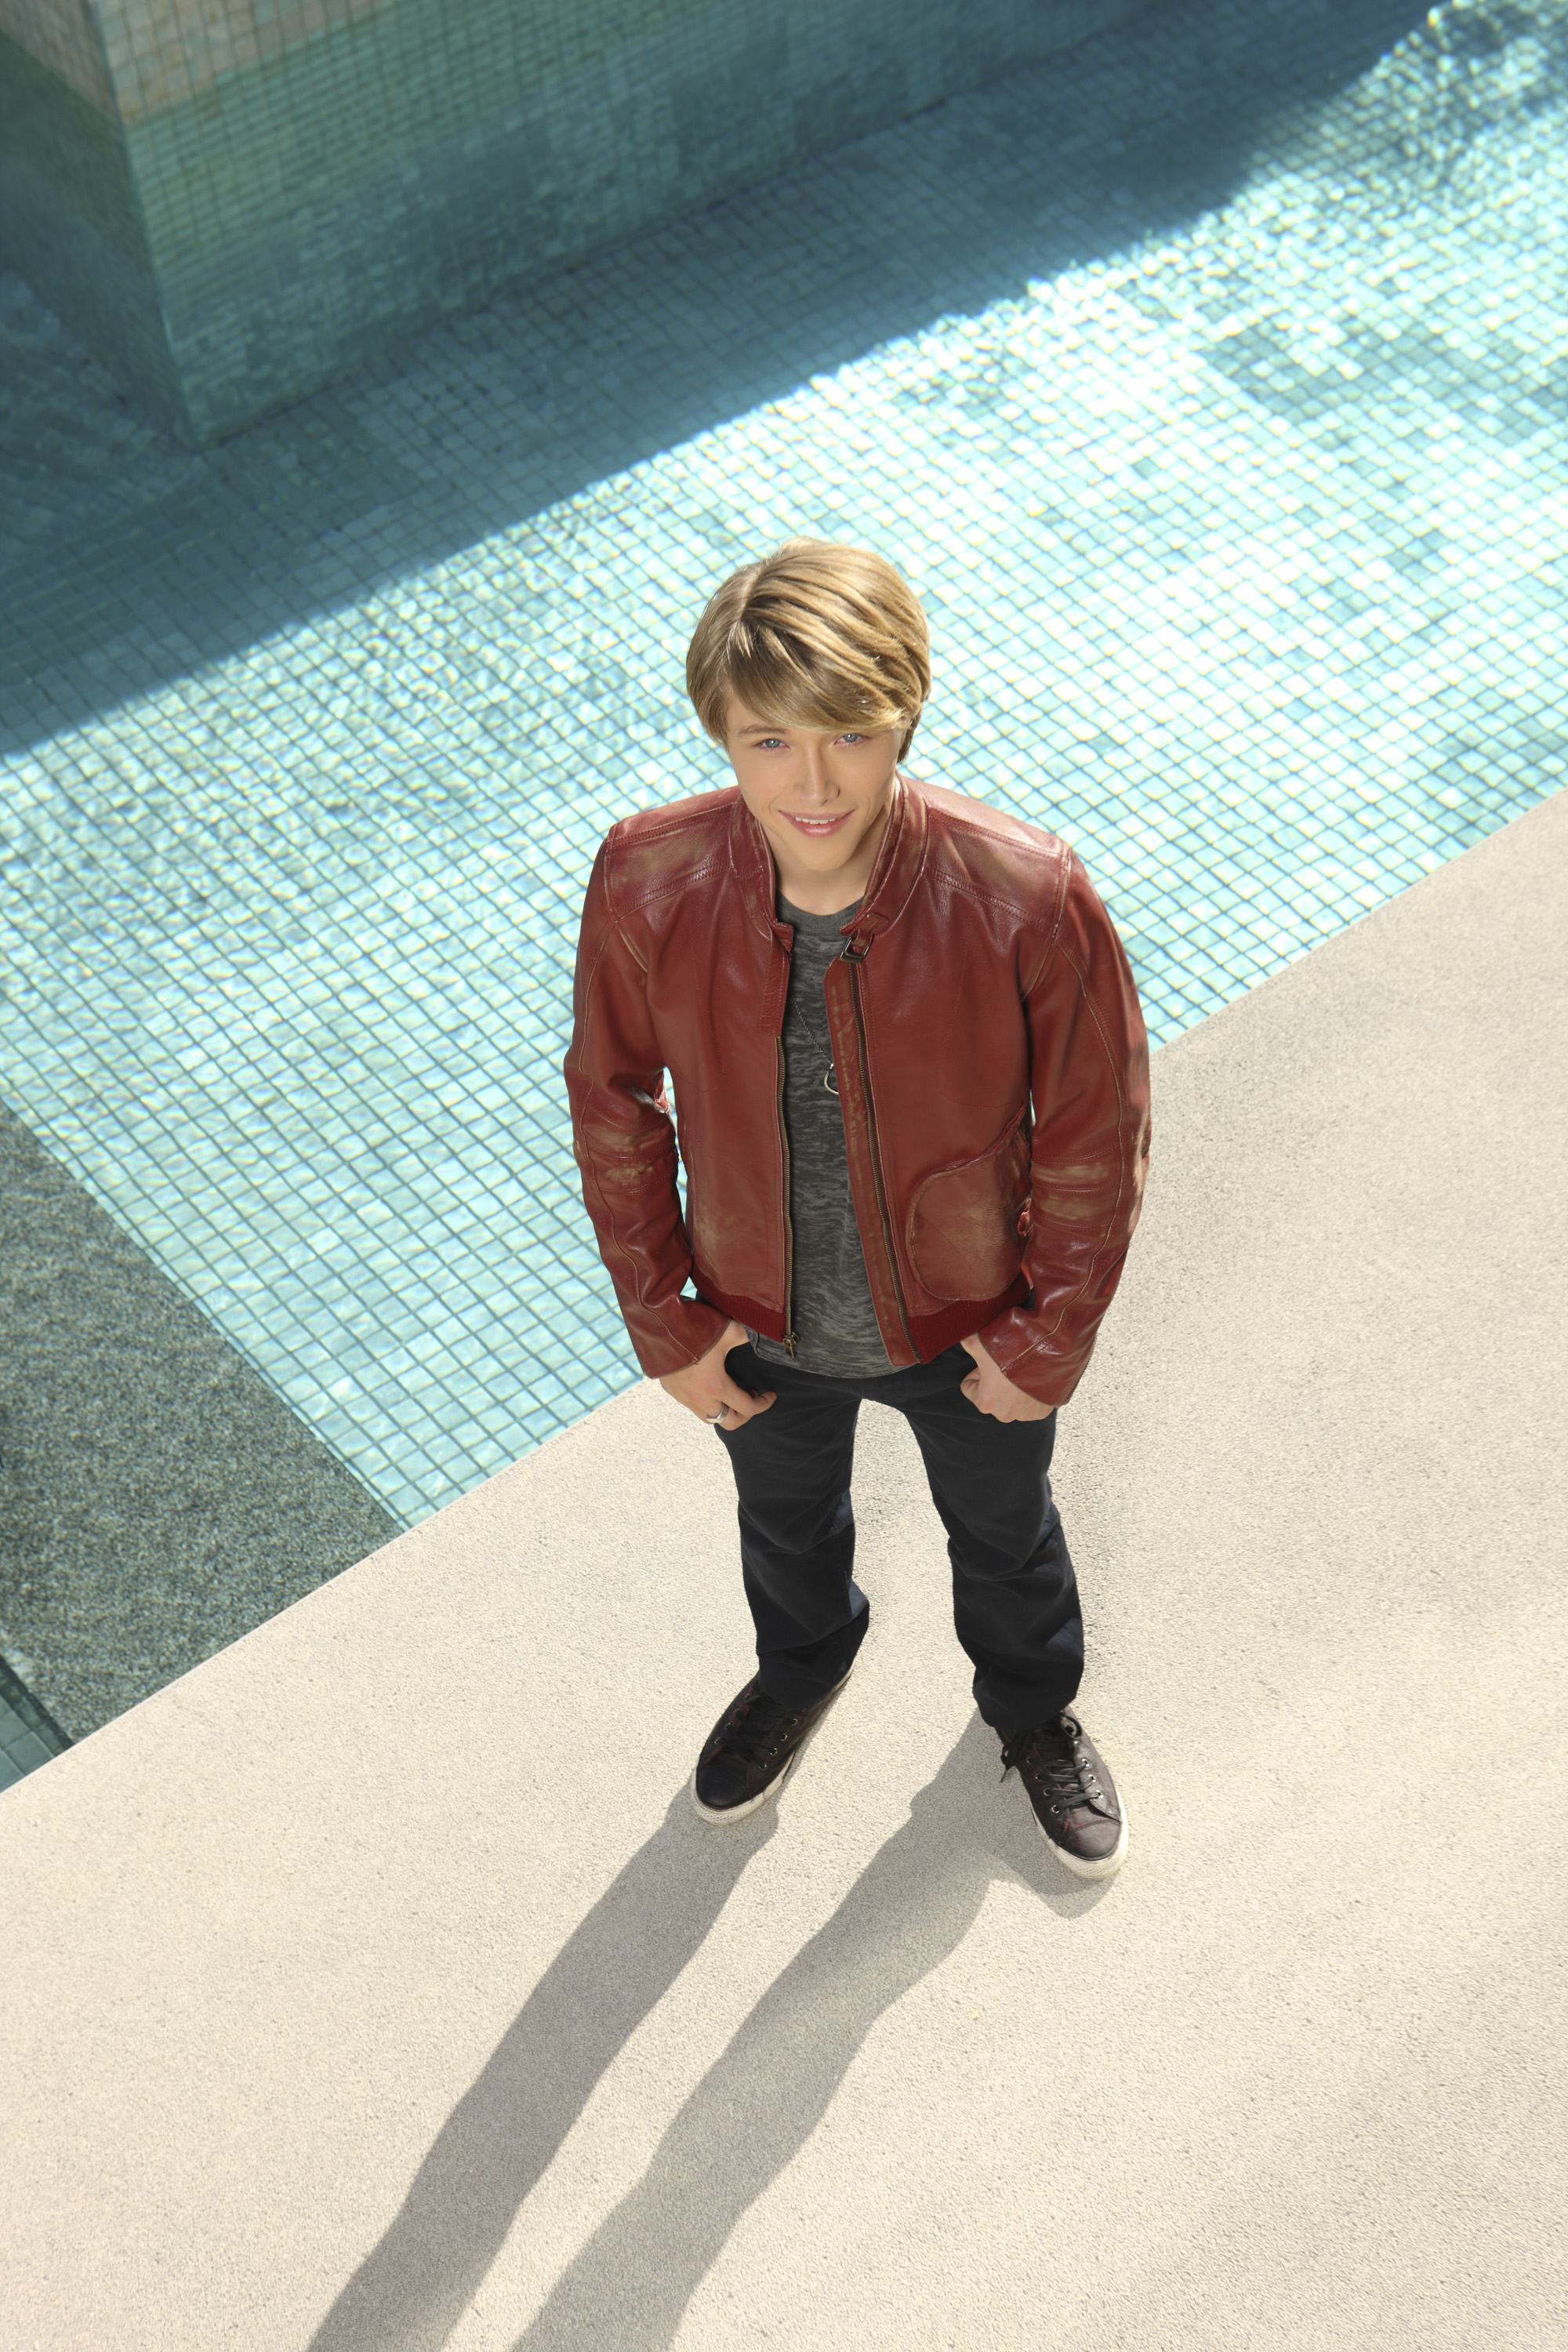 Sterling Knight Photo 13 Of 19 Pics Wallpaper Photo